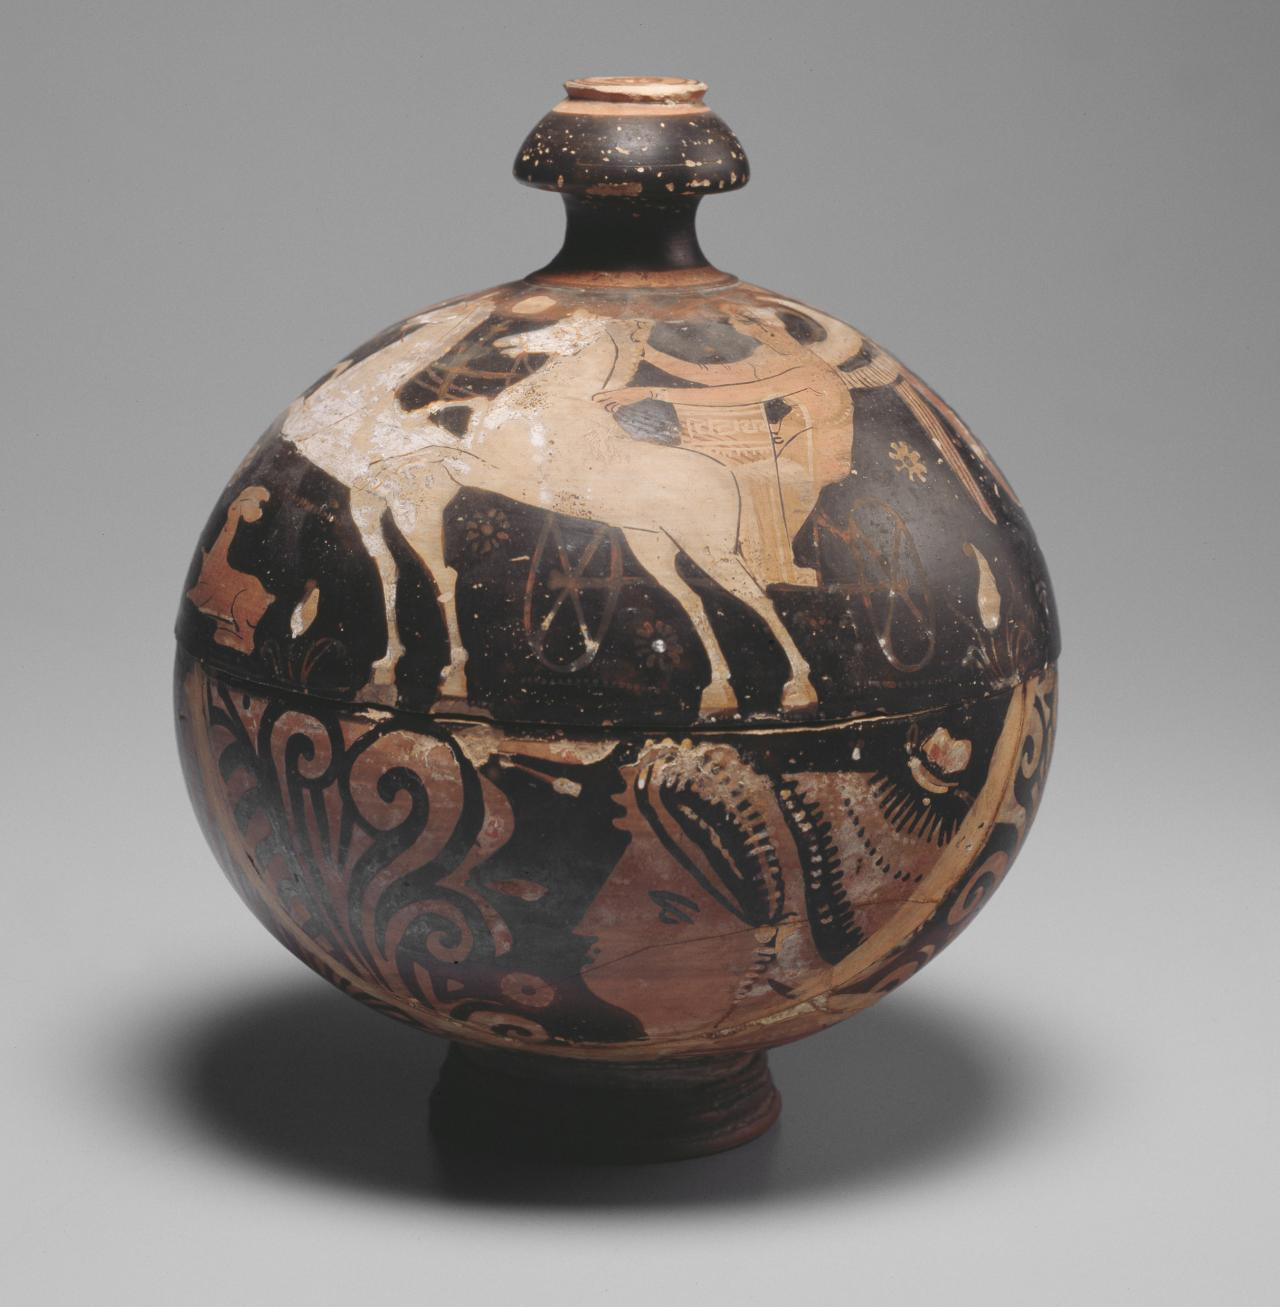 Pyxis bowl (South Italian red-figure ware)